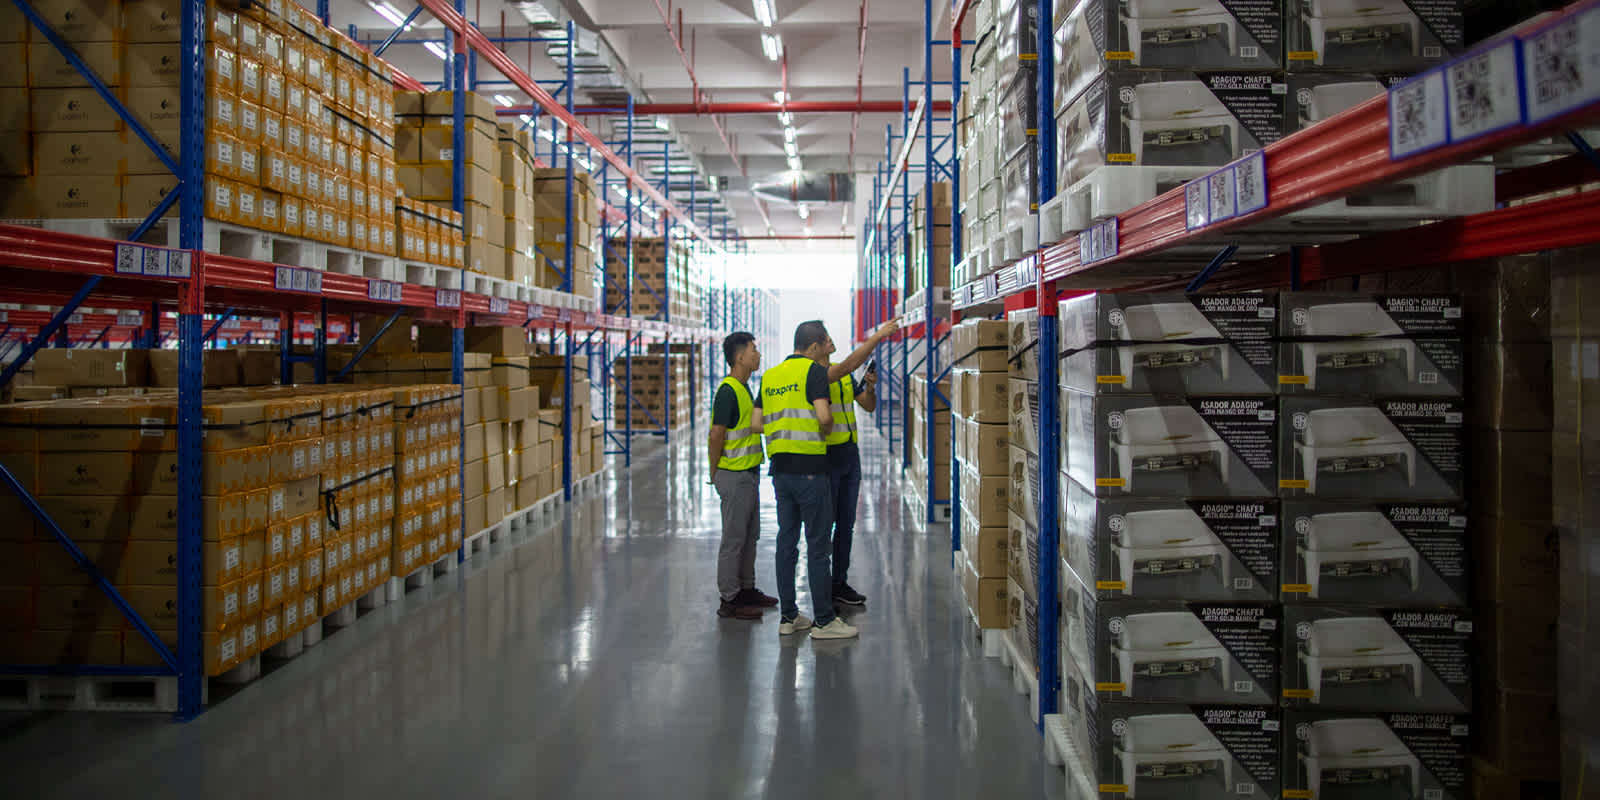 Flexport warehouse workers 5-5-20